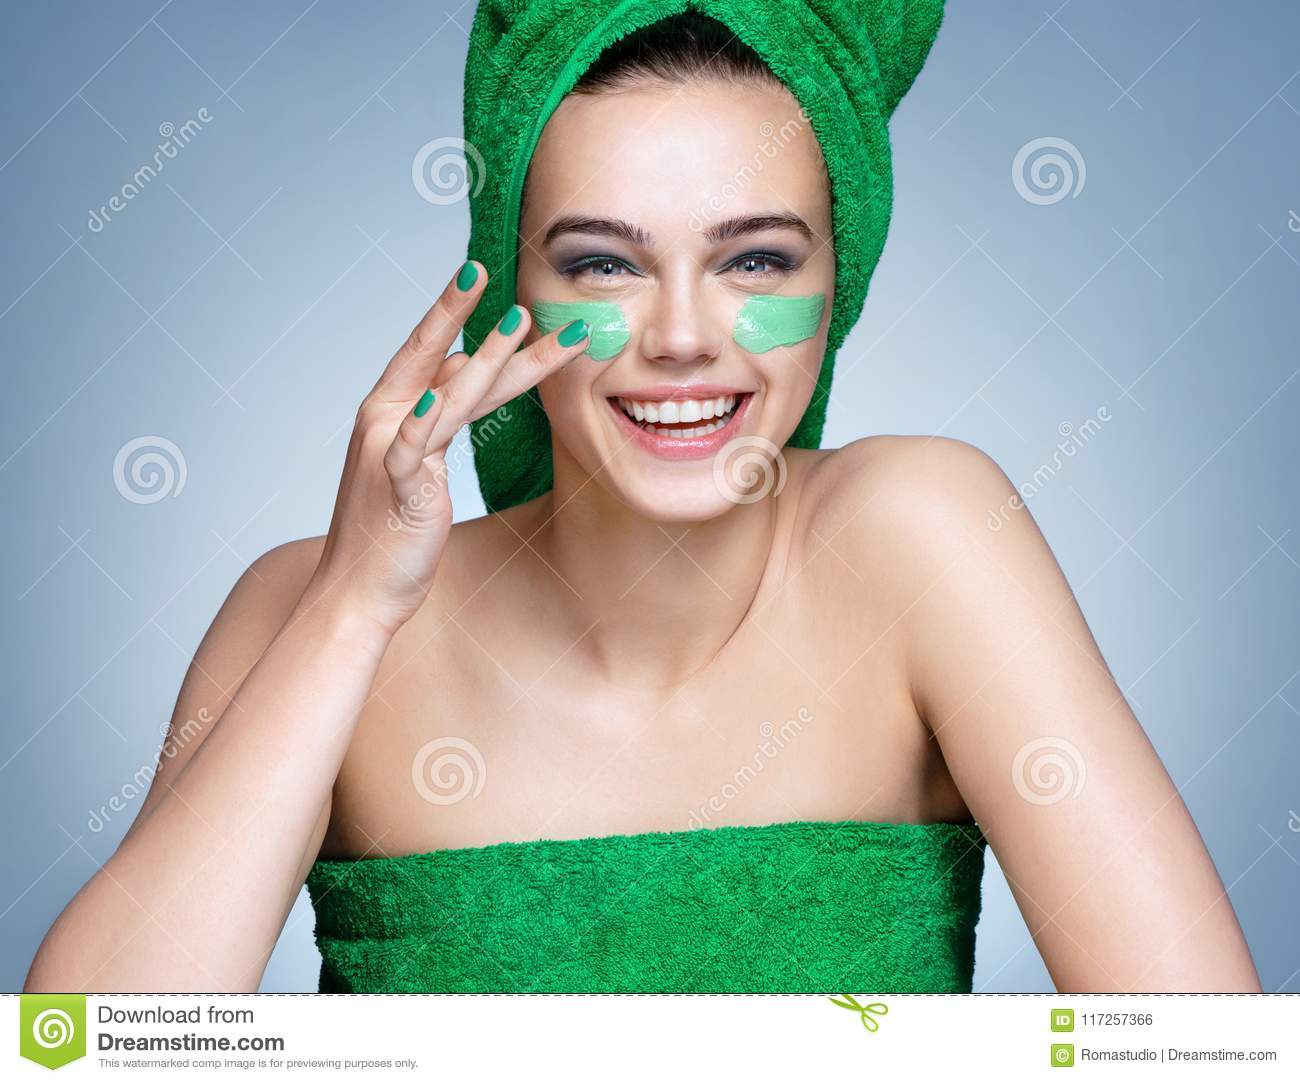 Laughing girl in green towels applying moisturizing cream on her face